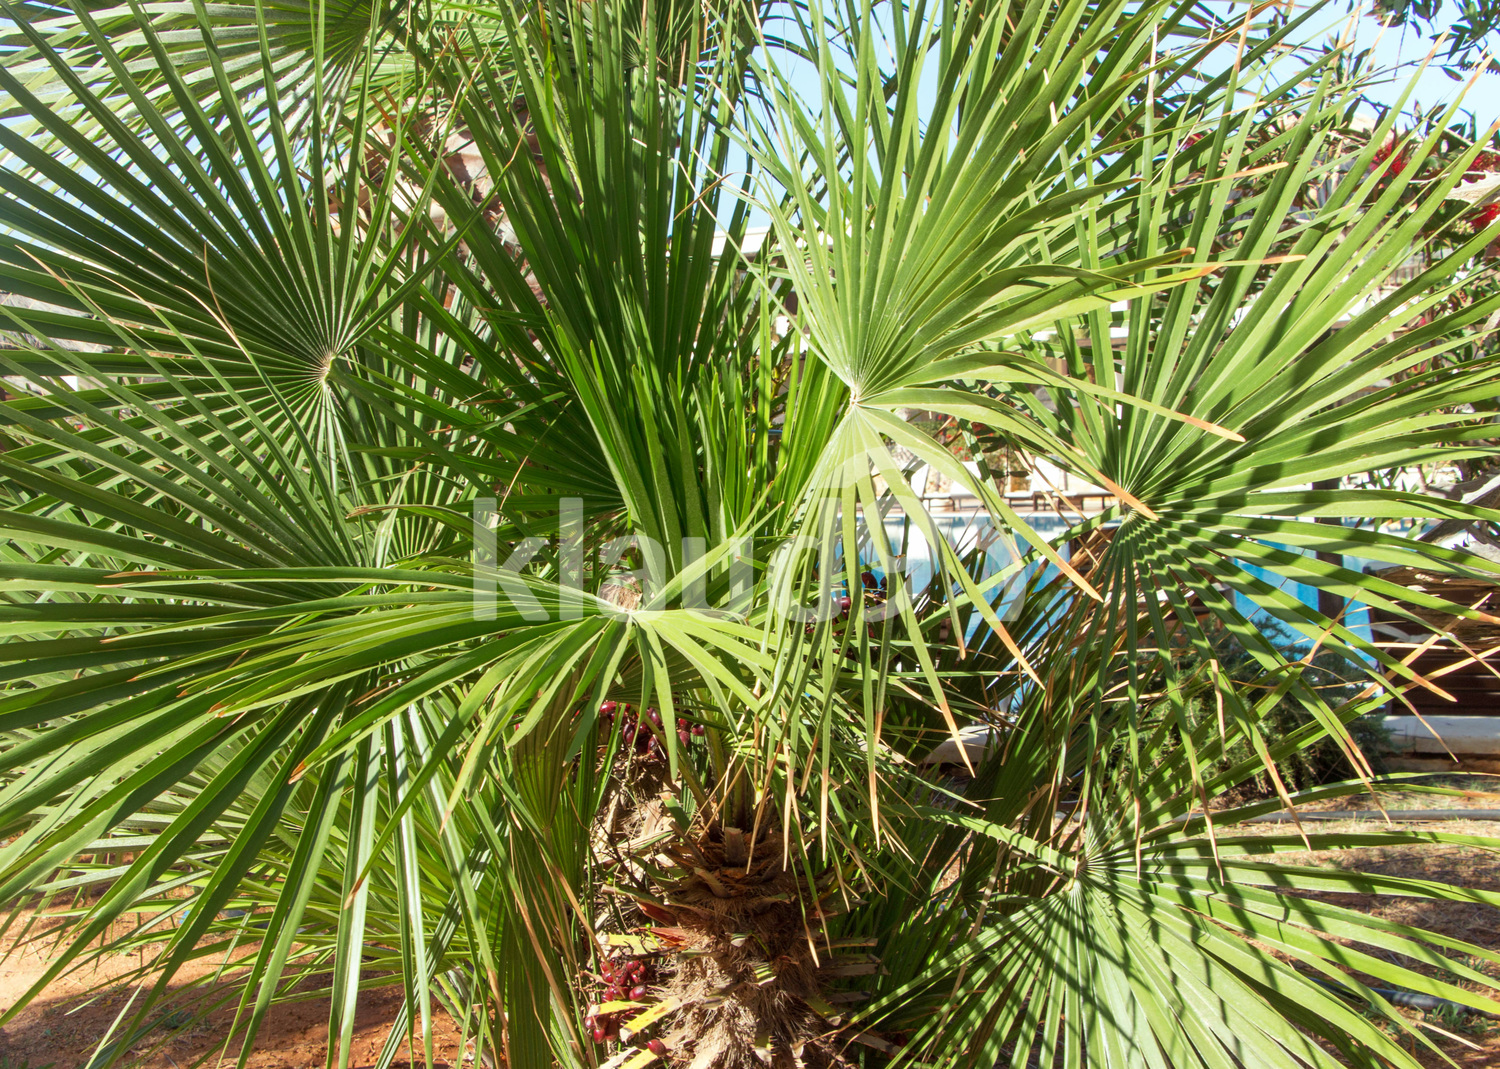 Tropical garden. Palm tree with round leaves